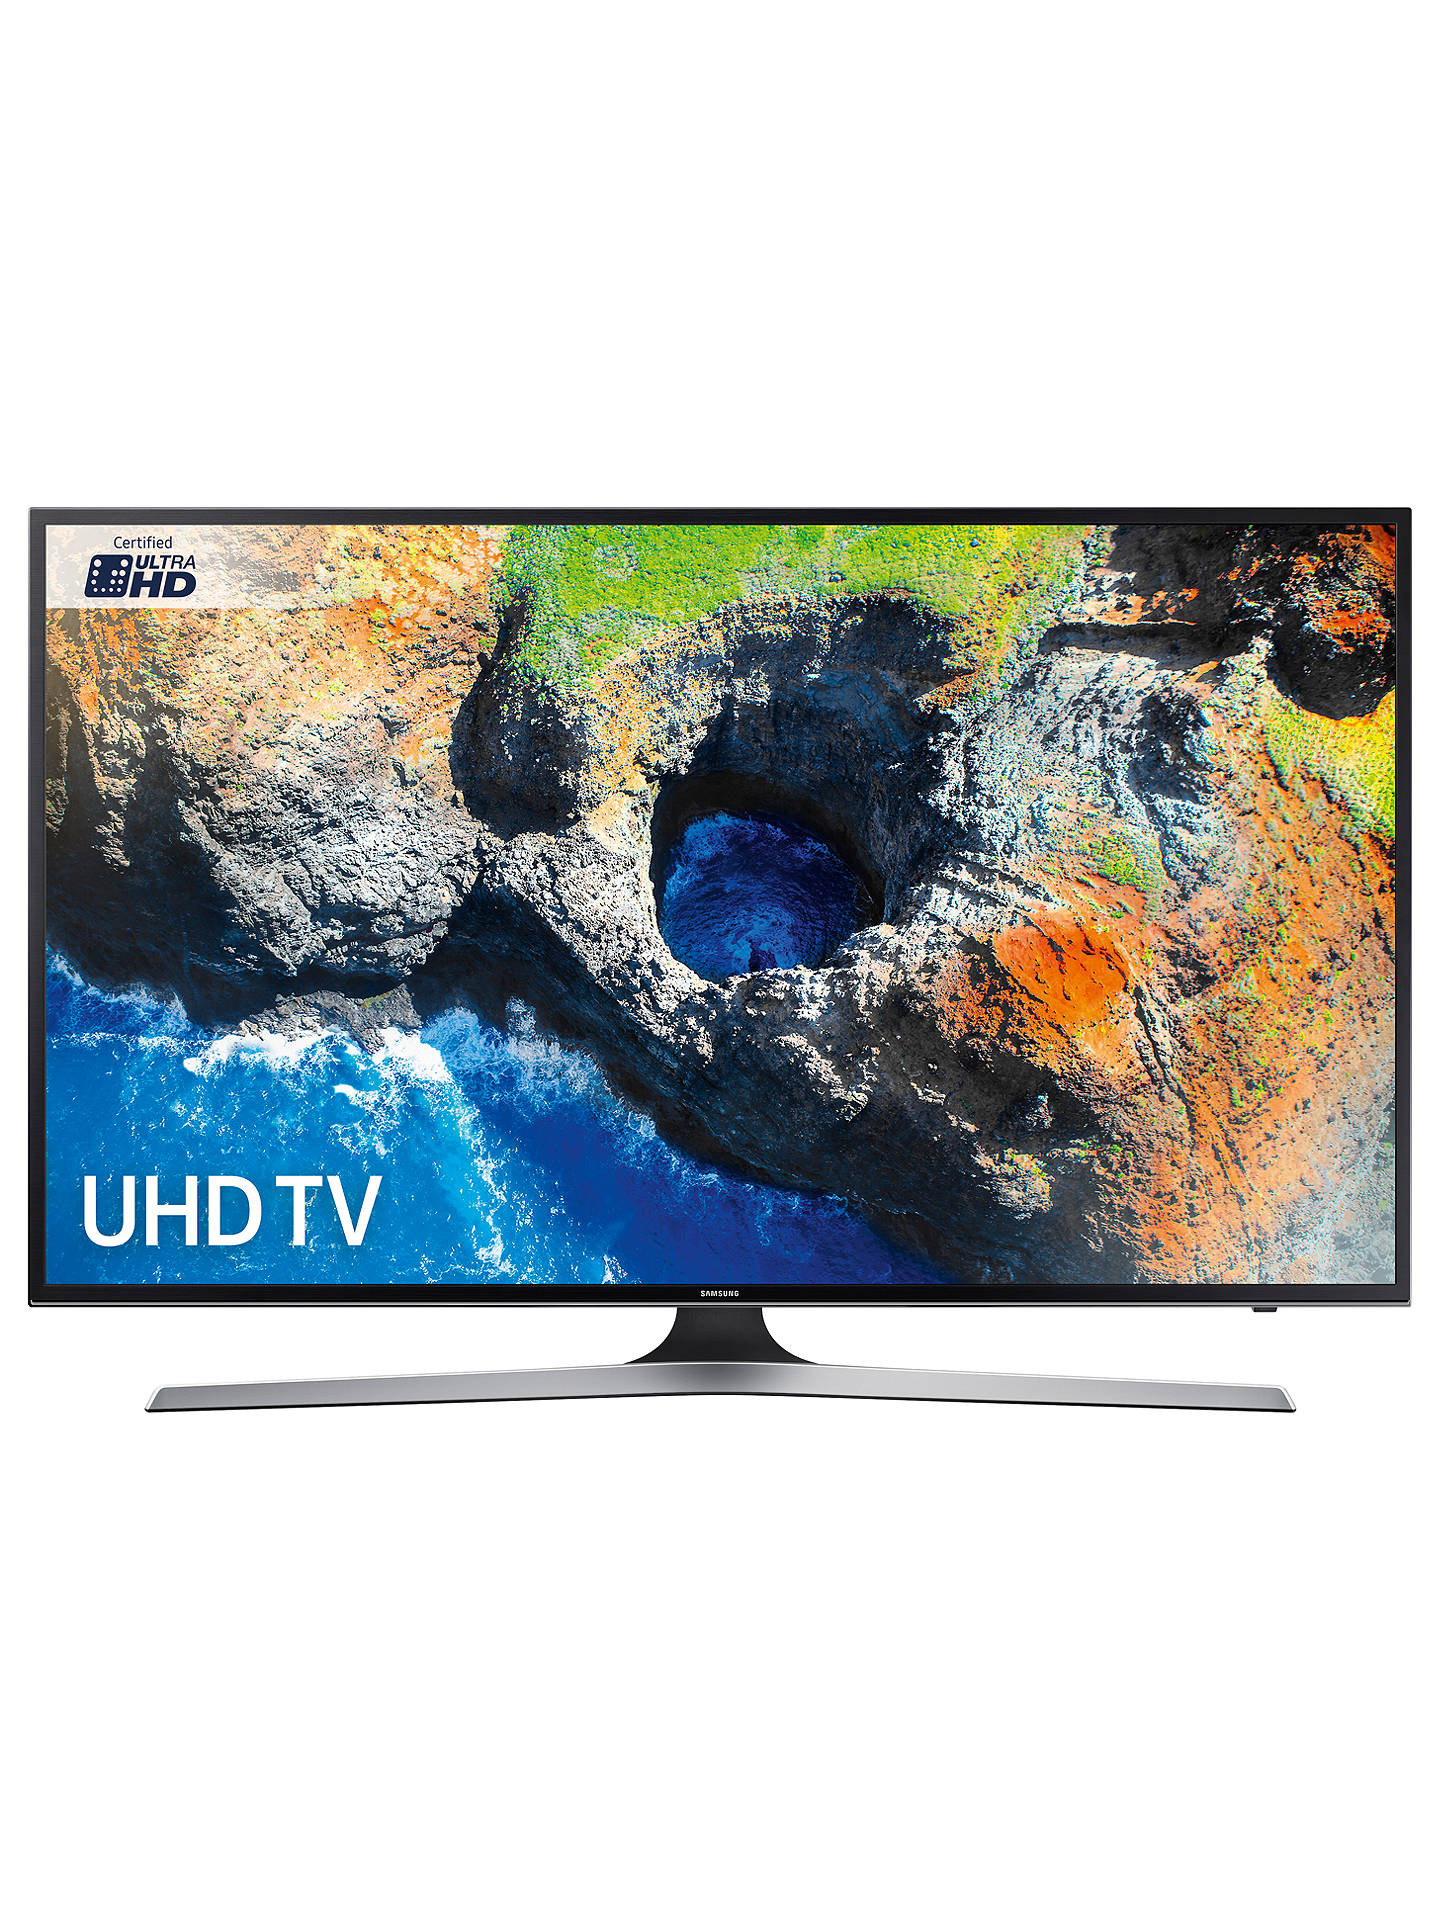 Samsung Ue40mu6120 Hdr 4k Ultra Hd Smart Tv 40 With Tvplus Black As Well Circuit Board Schematic Also Philips Buysamsung Online